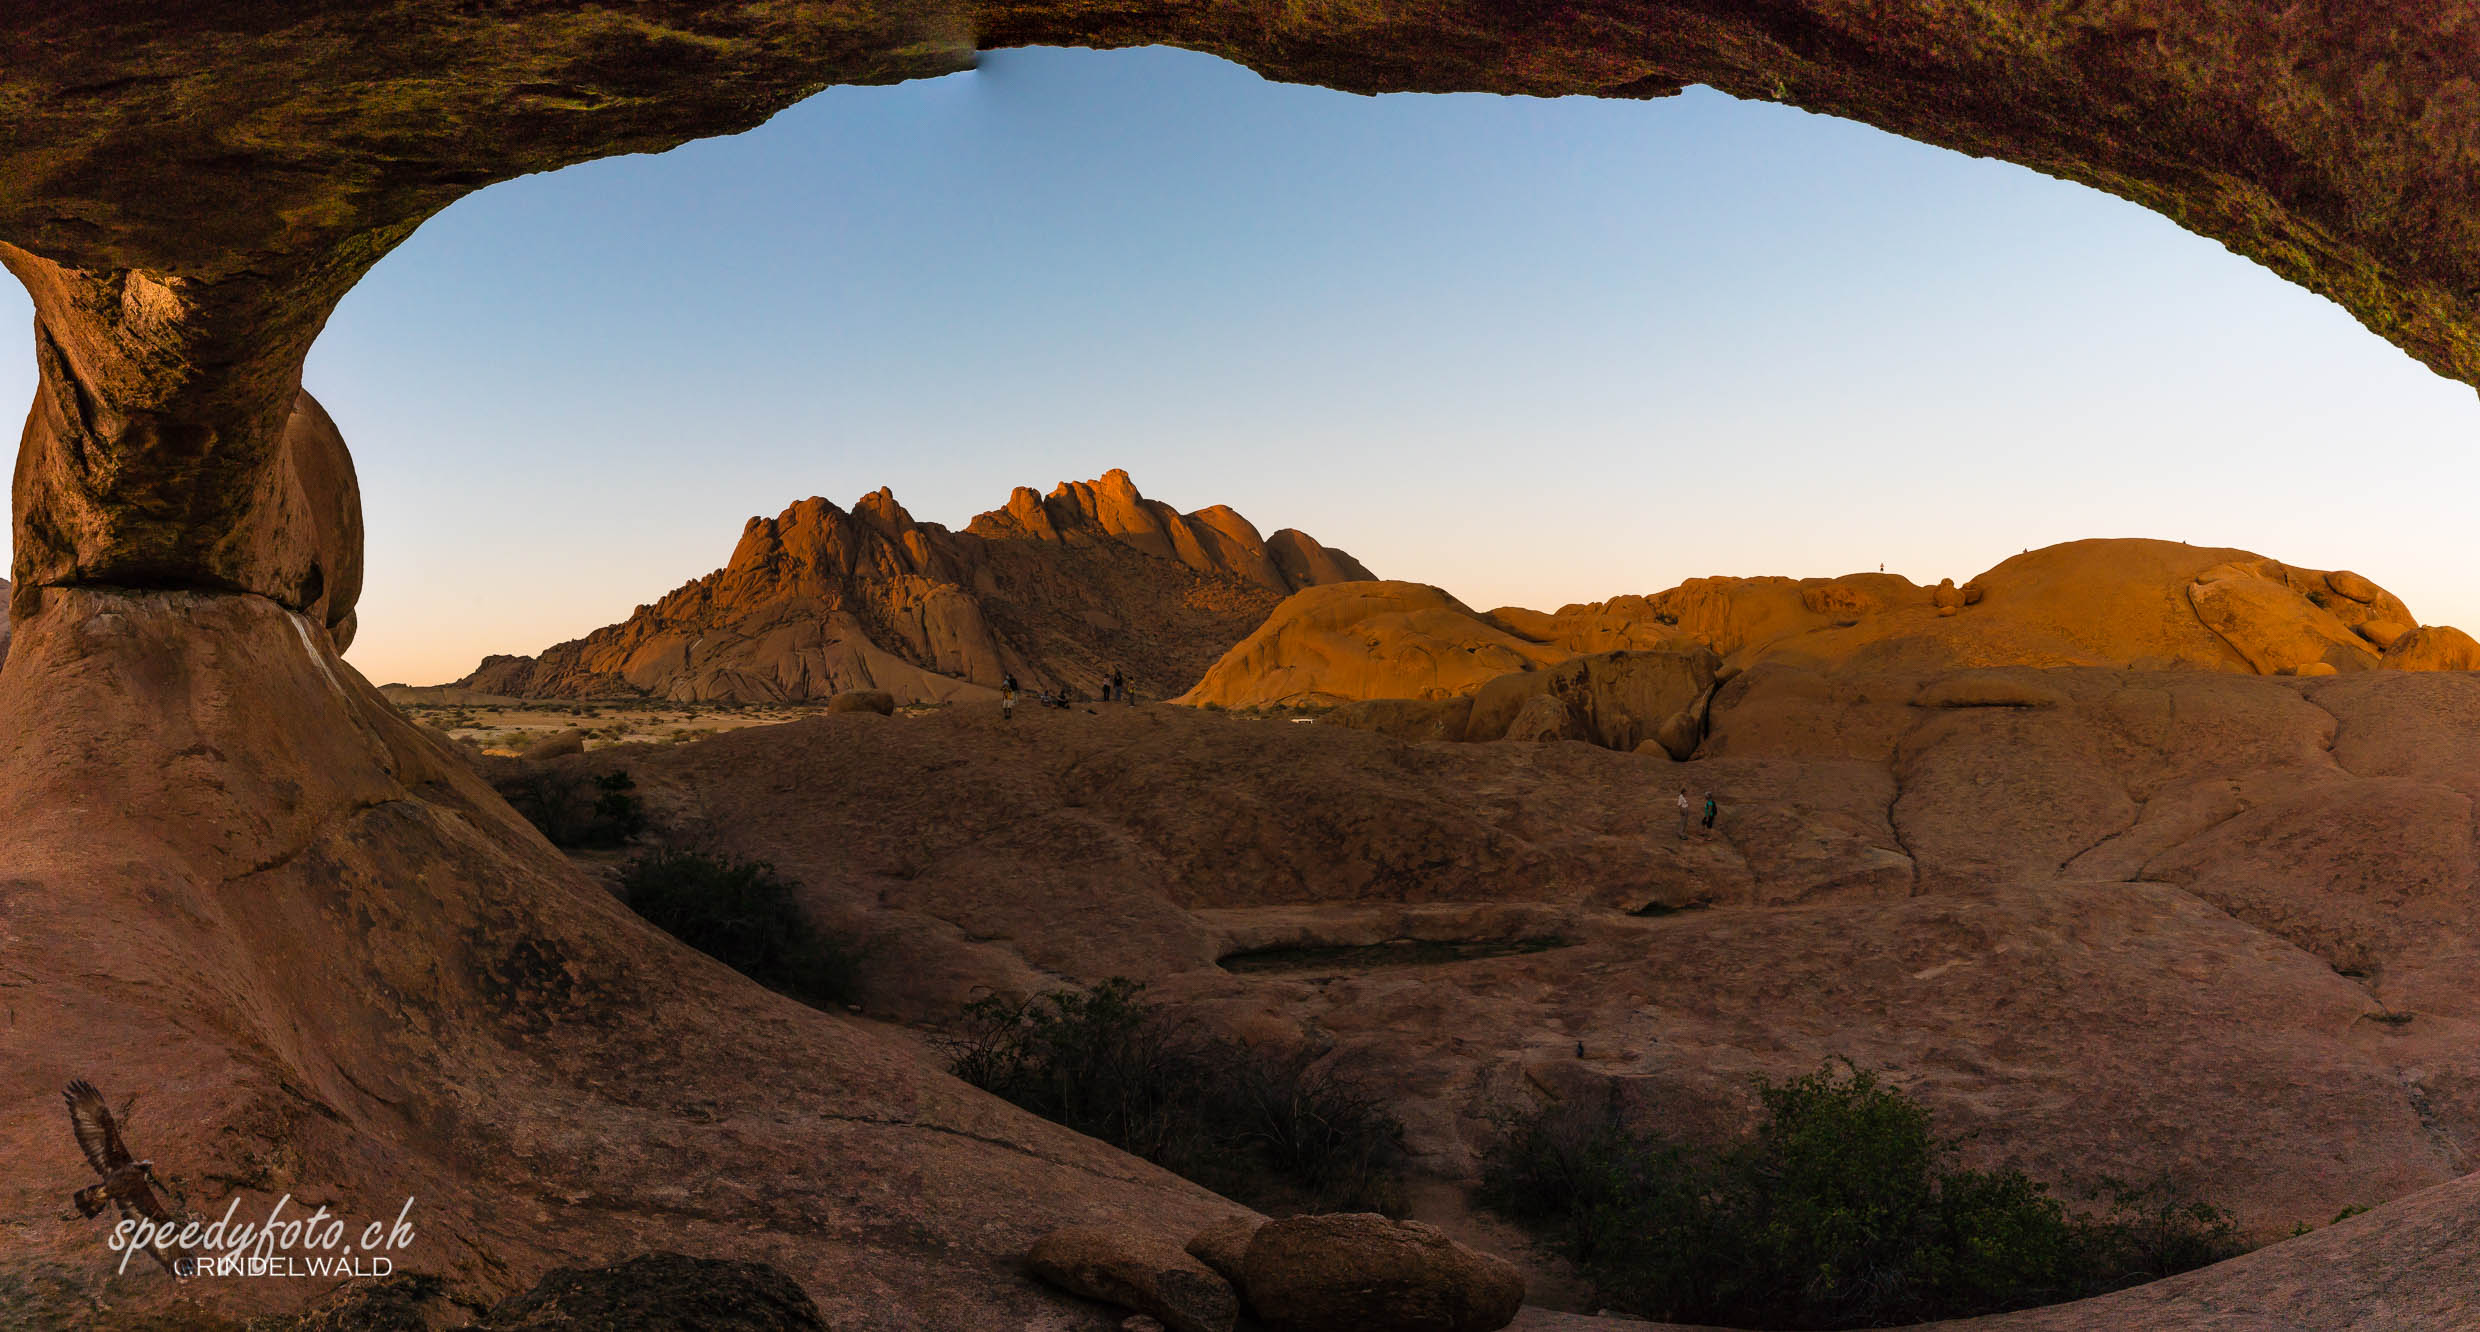 View from the Arch - Spitzkoppe